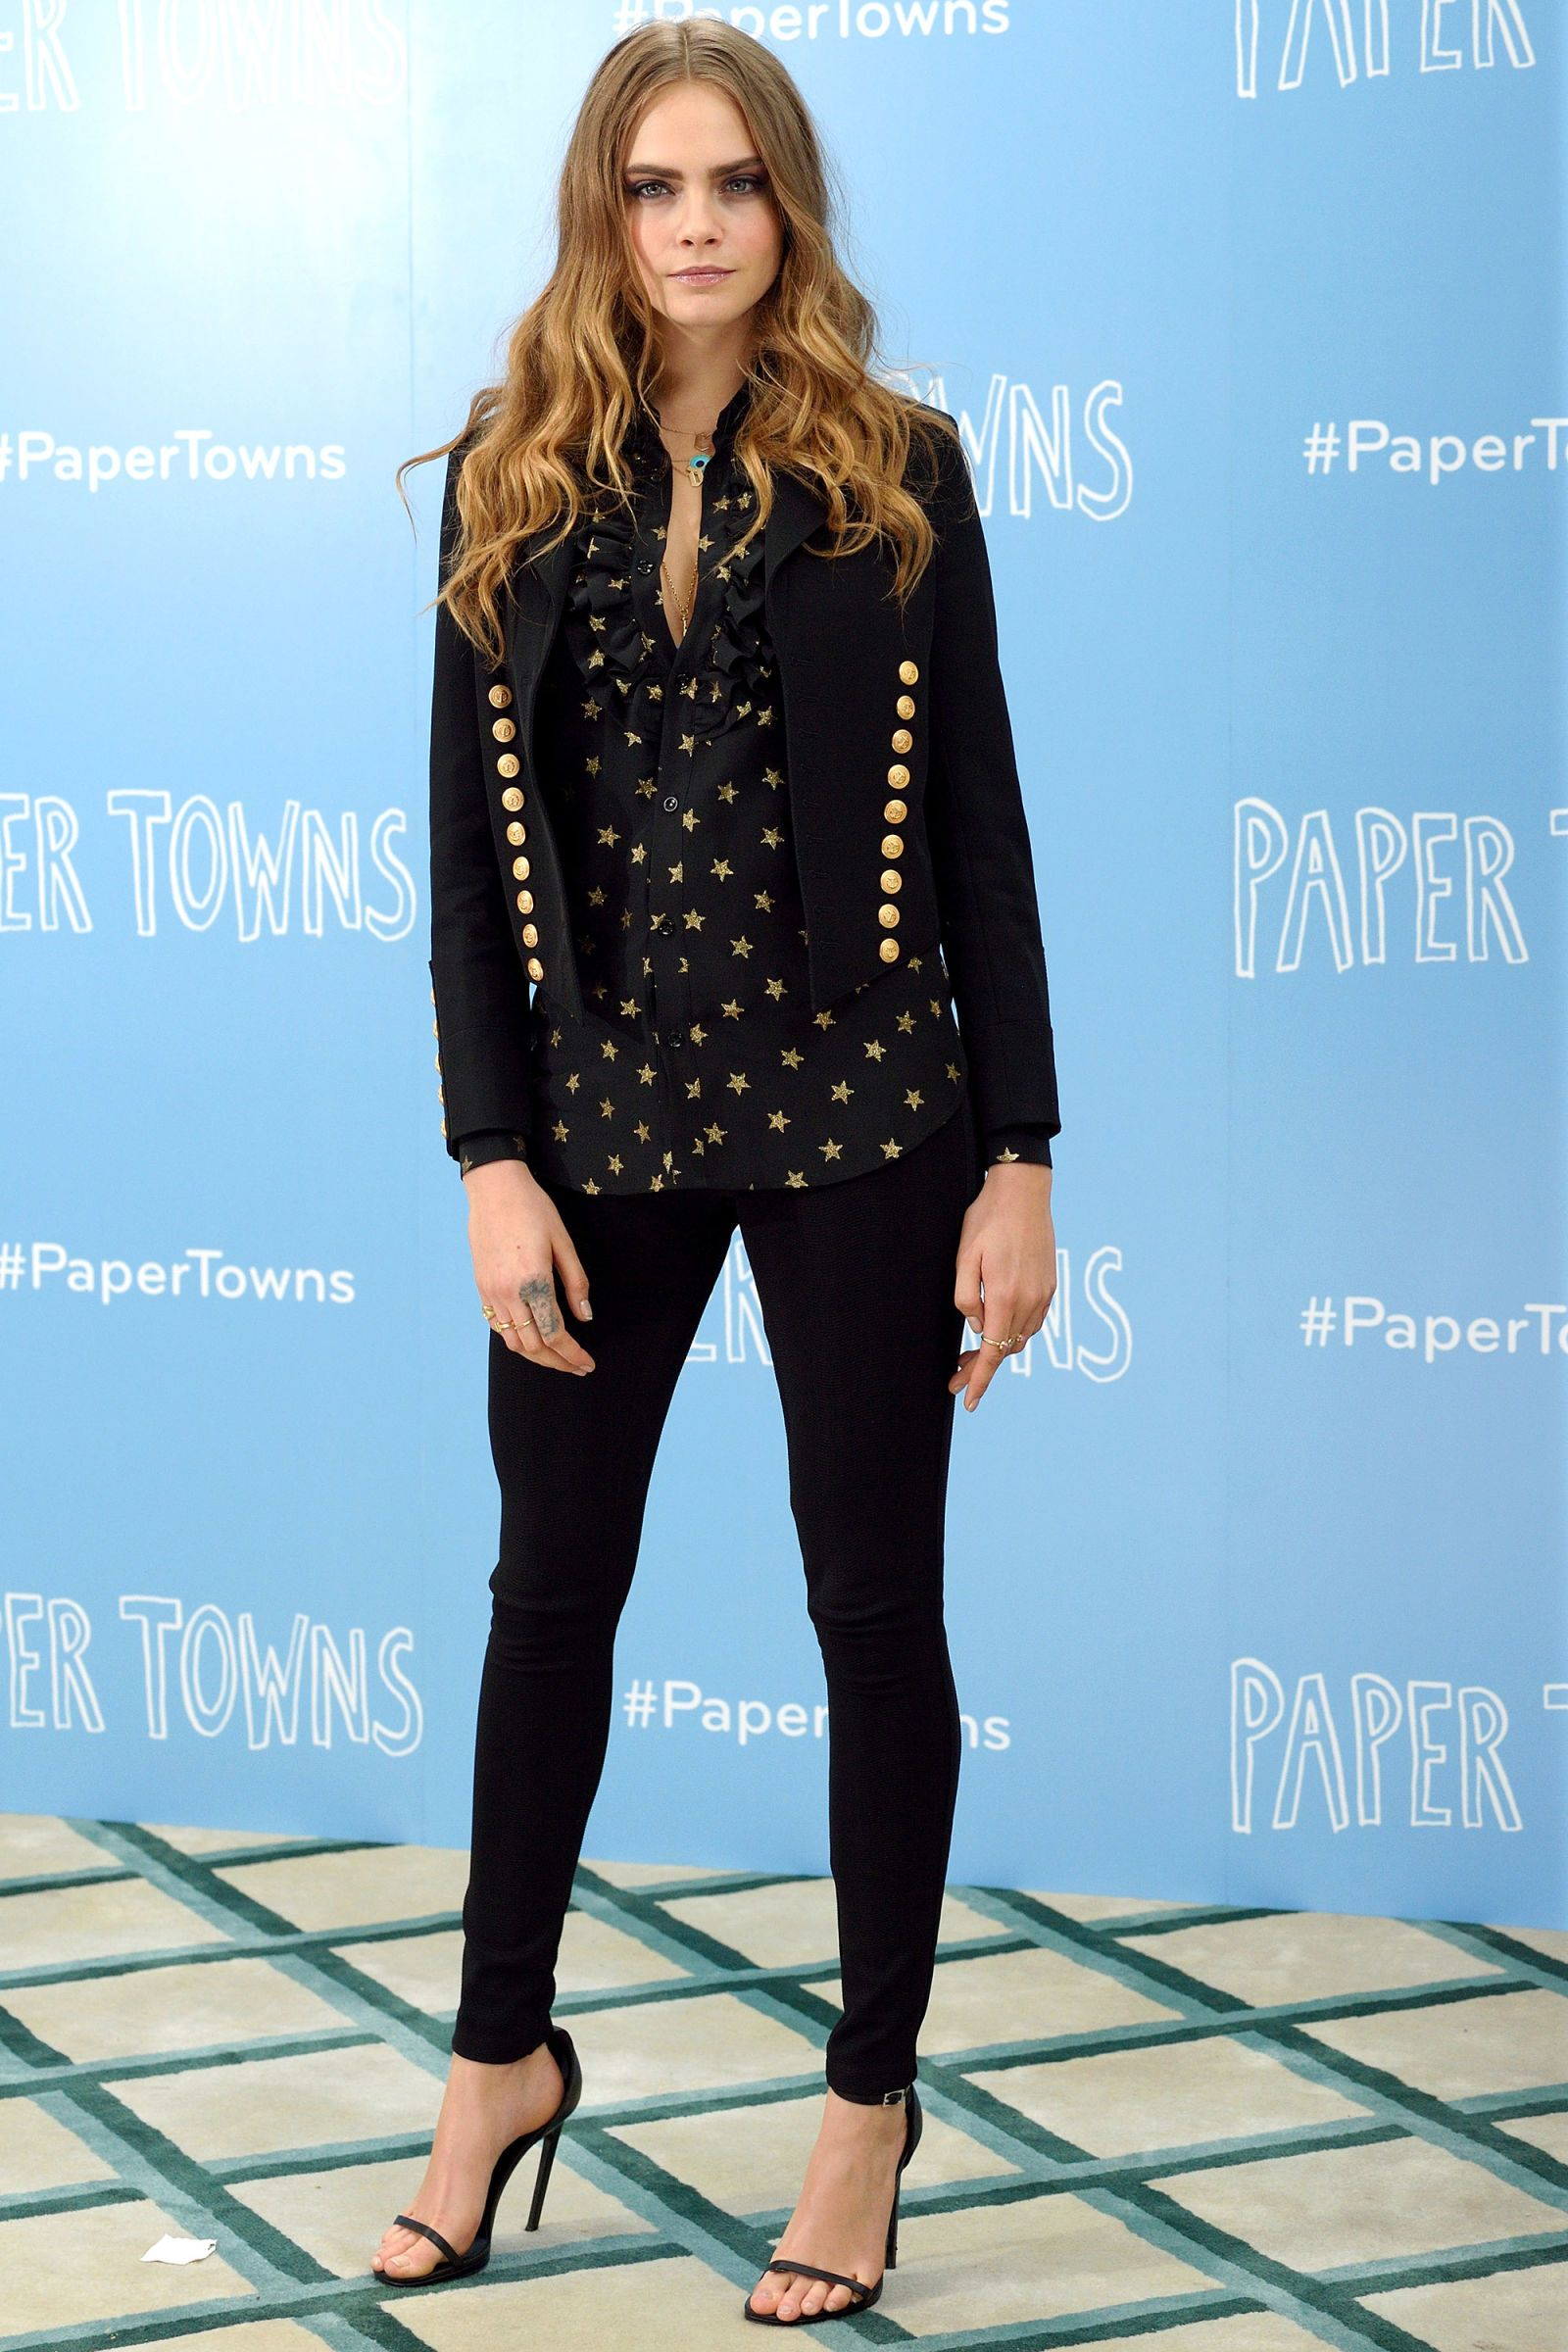 In Saint Laurent by Heidi Slimane at the Paper Towns photocall in London   - Seventeen.com CARA DELEVINGNE